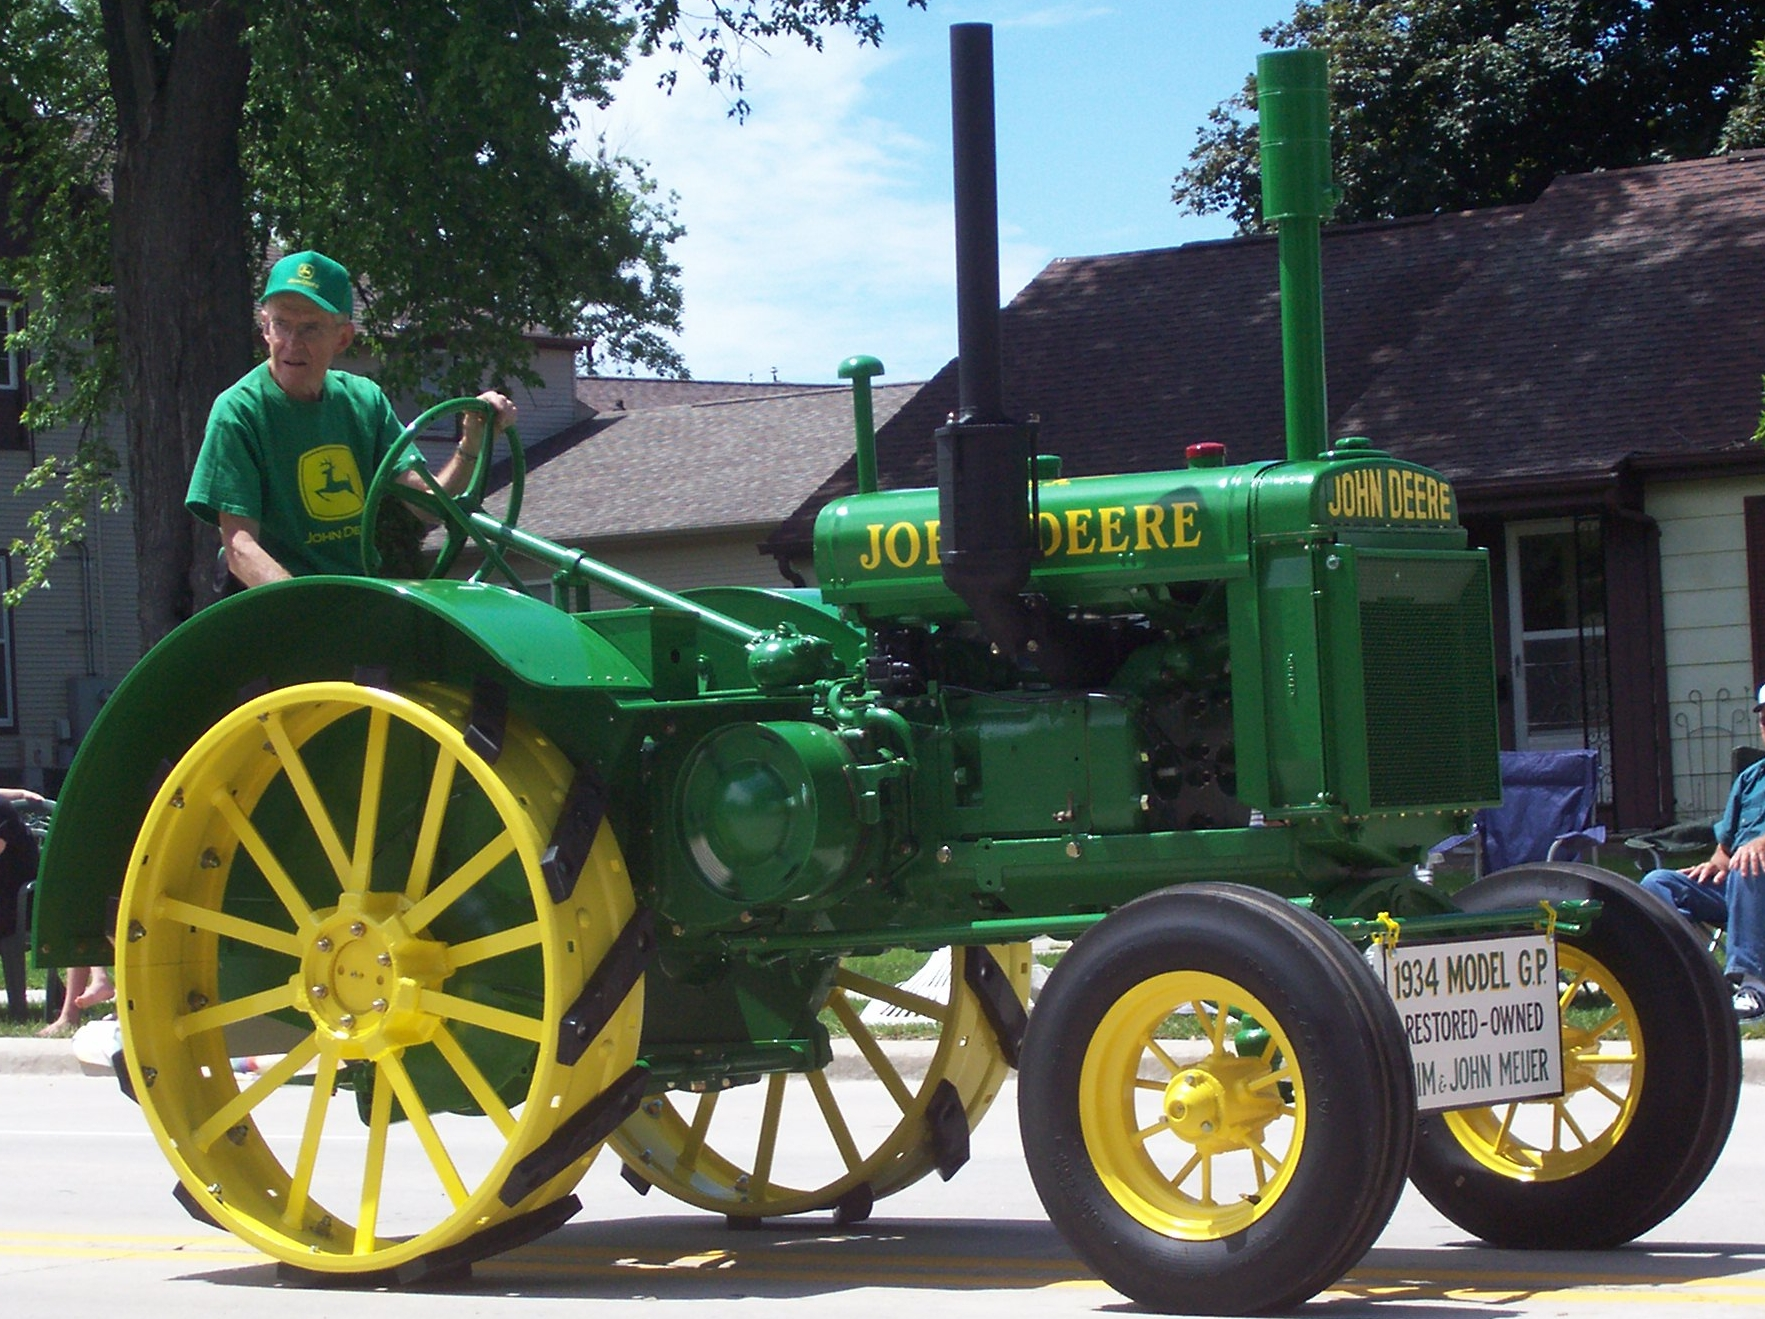 John deere gp photo - 1